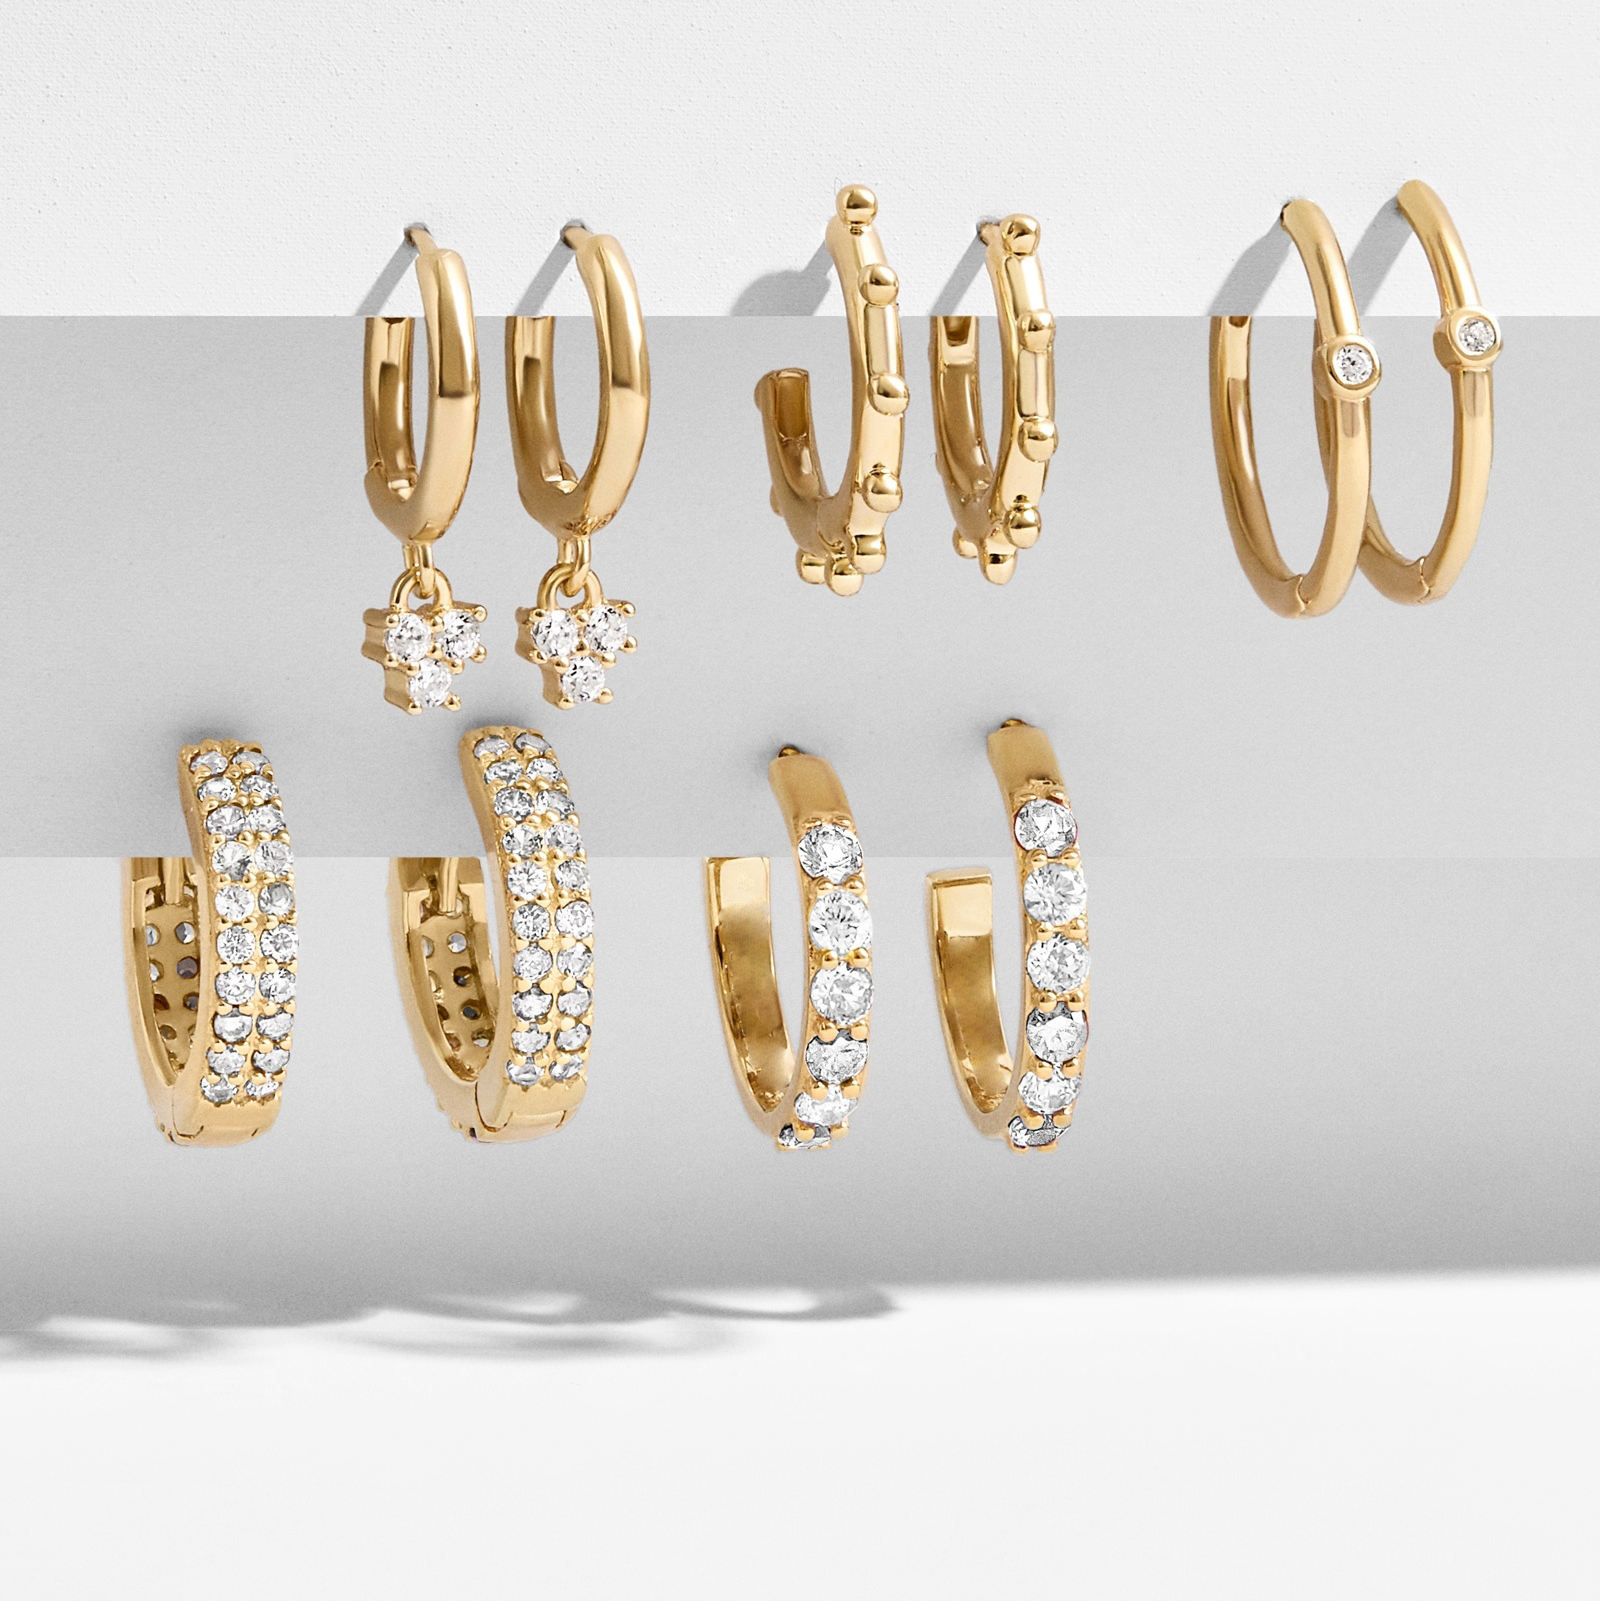 Barlaycs 2020 Hot Sale 14K Gold Plated Brass Zircon Huggie Hoop Earrings for Women Jewelry - Environmental Protection Material